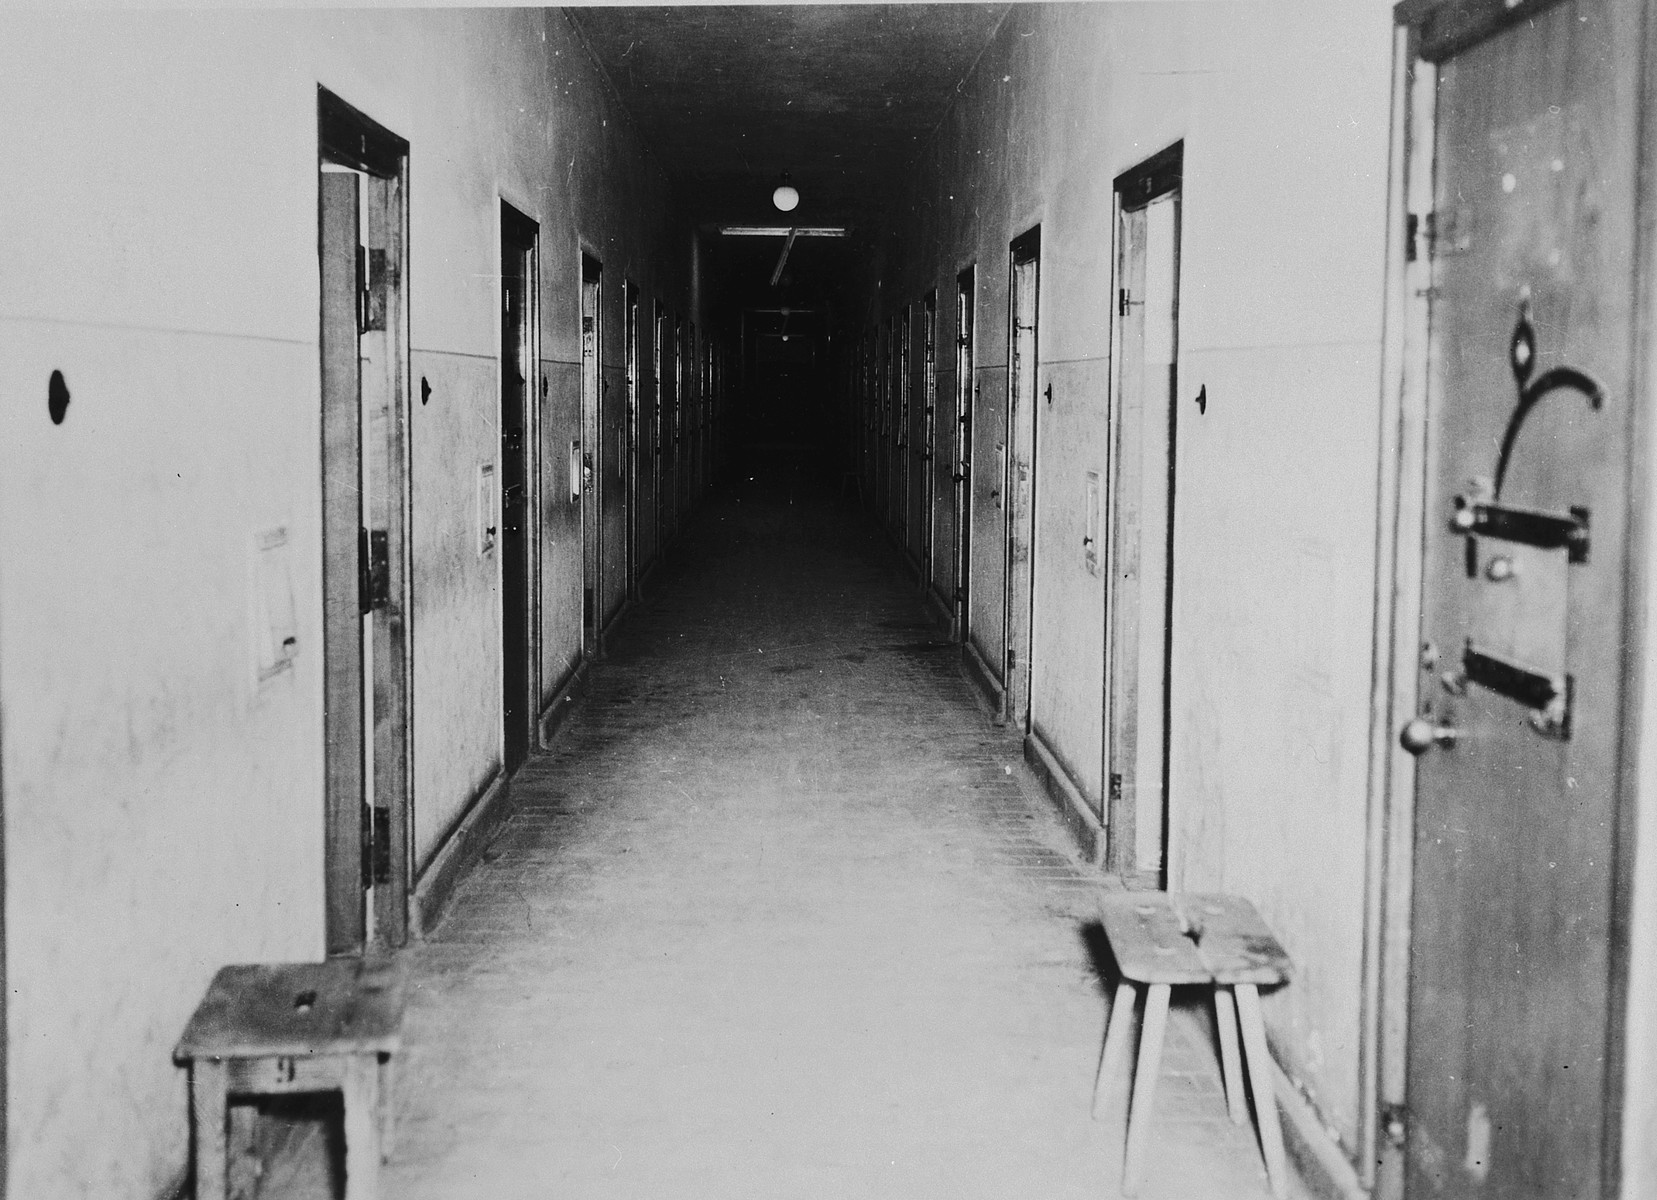 Interior view of the corridor of the prison in the Dachau concentration camp; individual cells can be seen on either side.